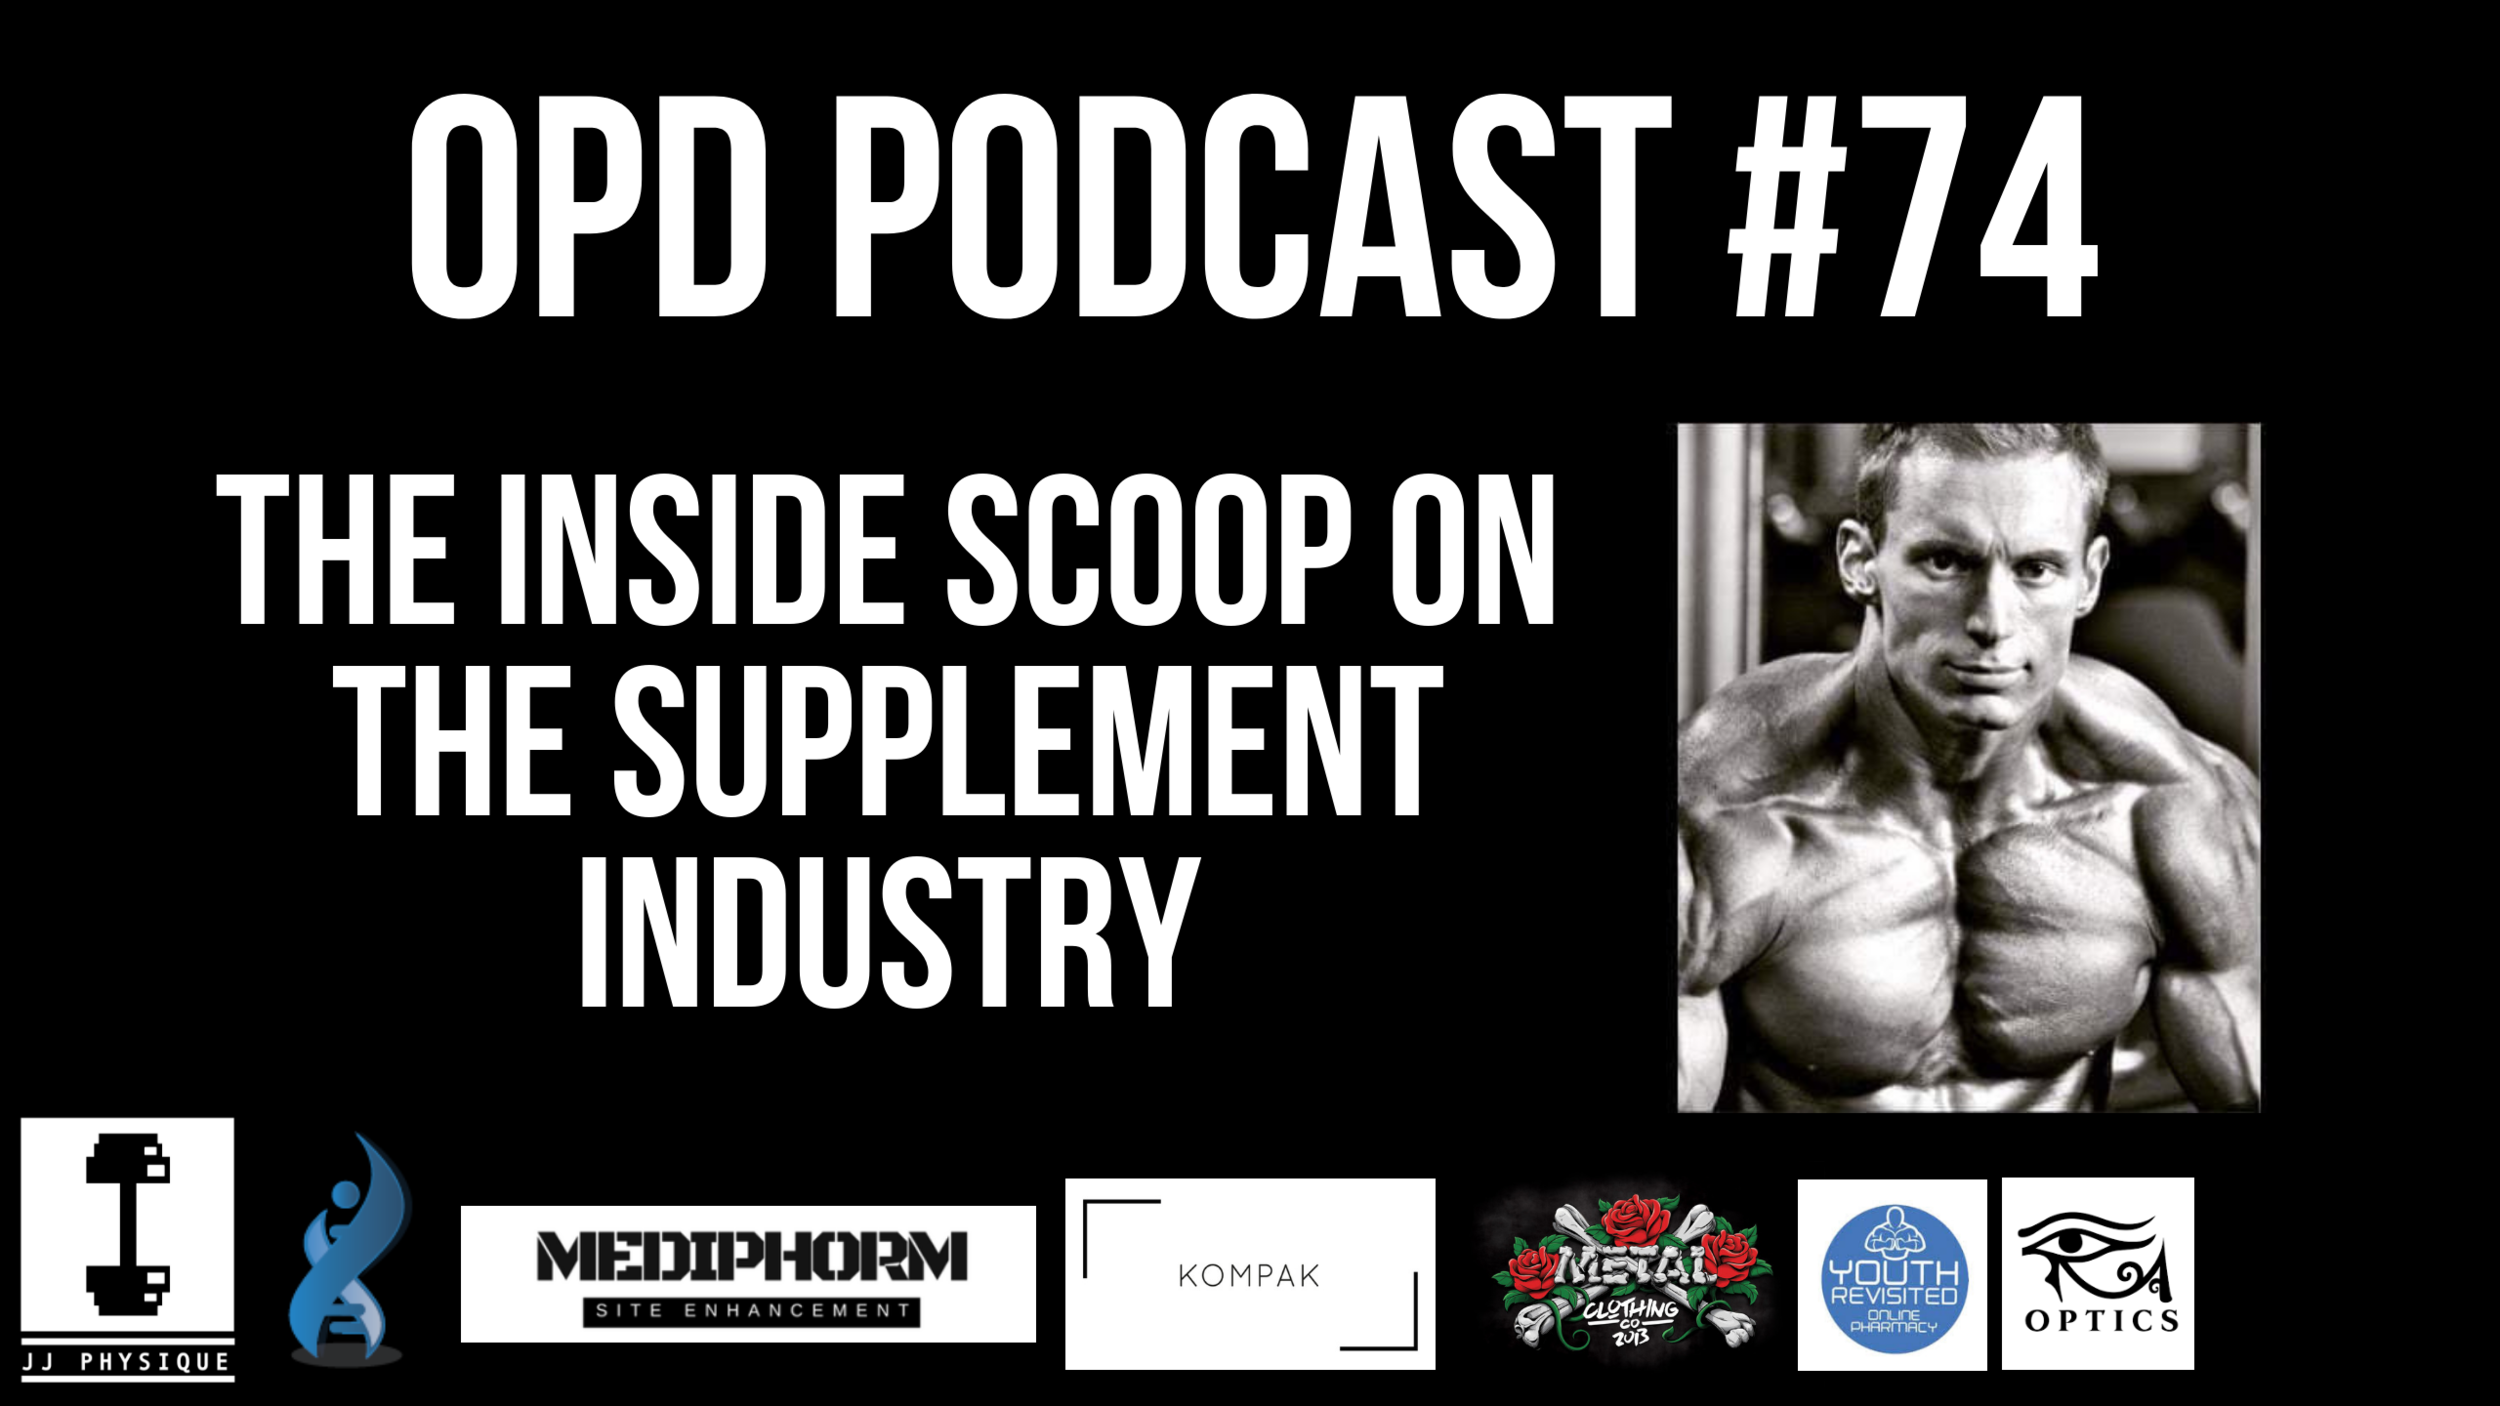 OPTIMAL PHYSIQUE DEVELOPMENTPODCAST (11).png